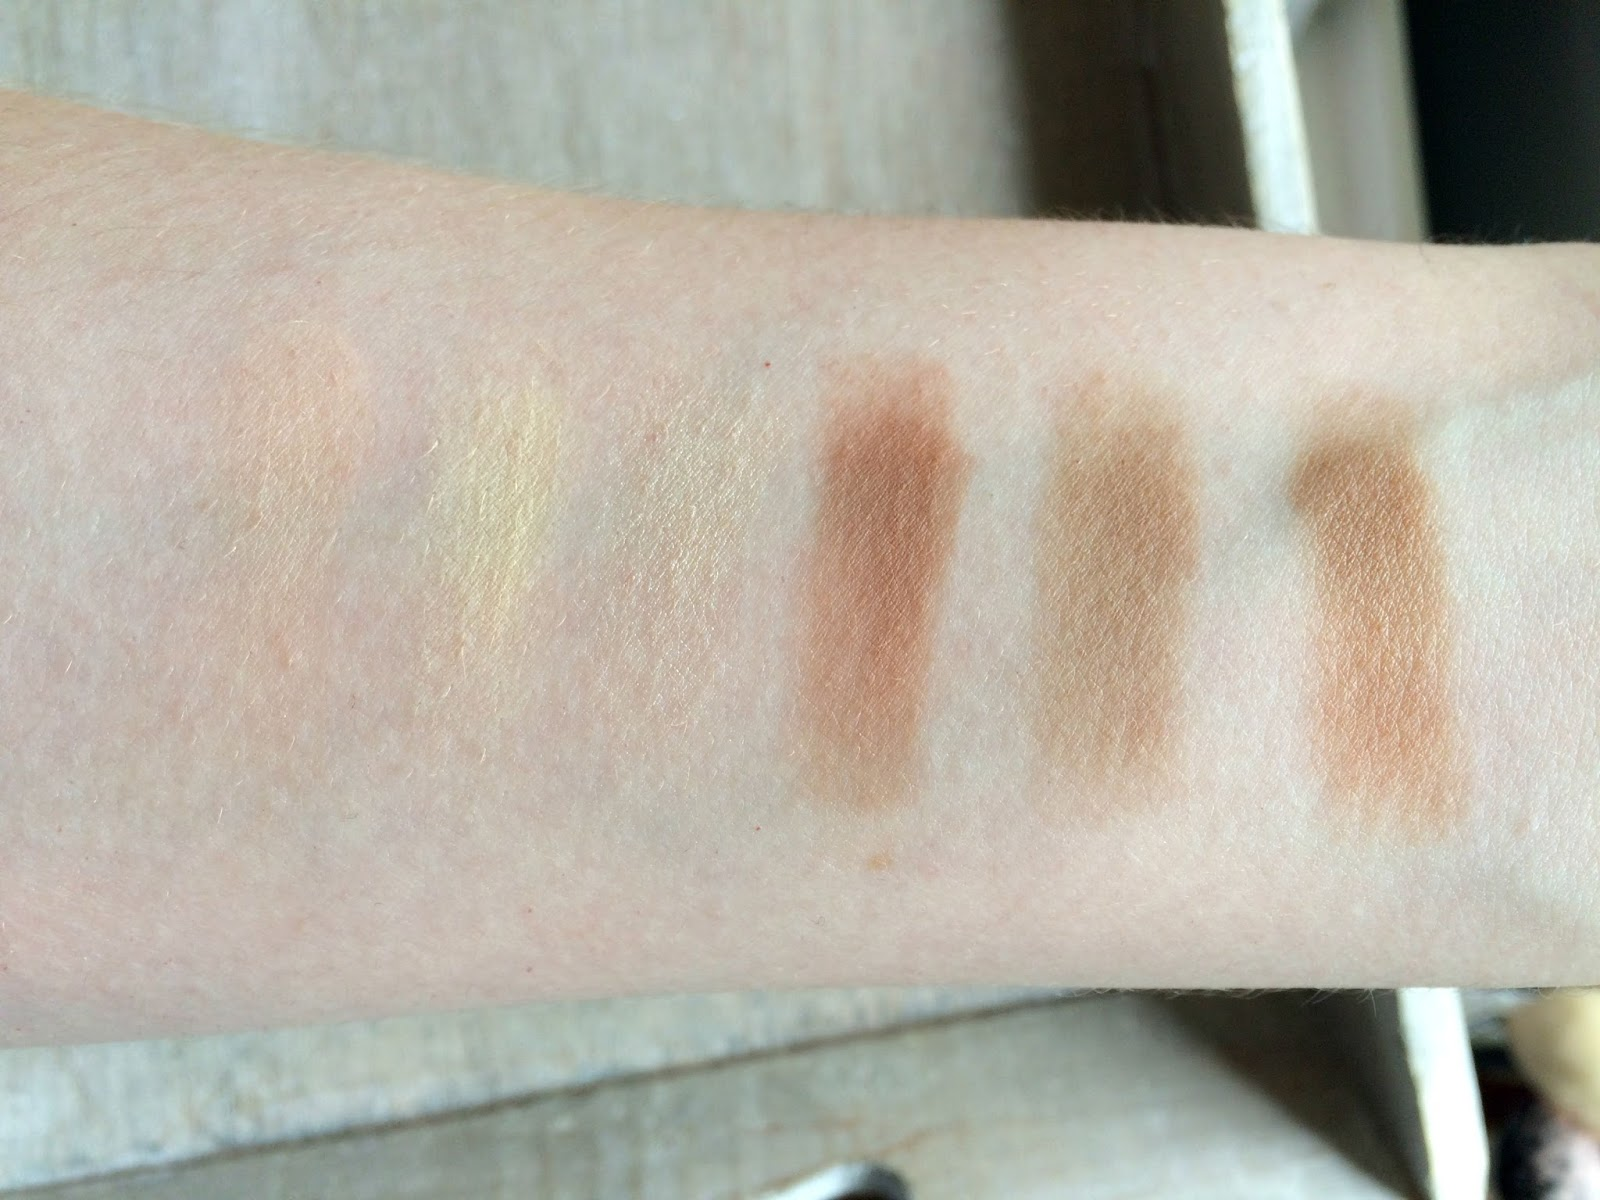 Anastasia Contour Kit Light Medium swatches